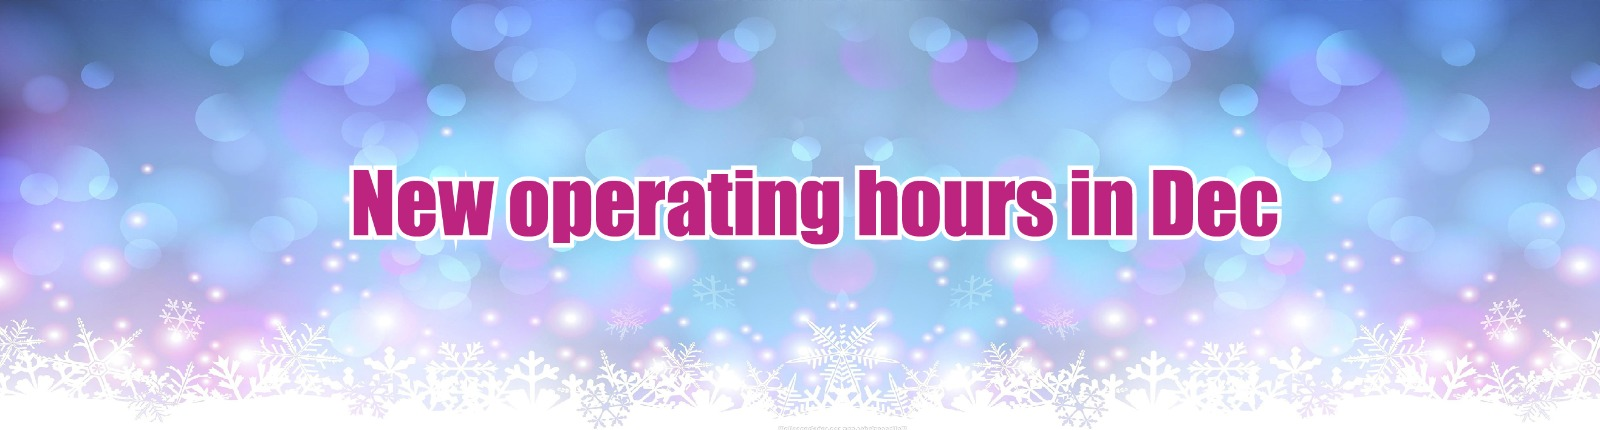 New operating hours in December 2020